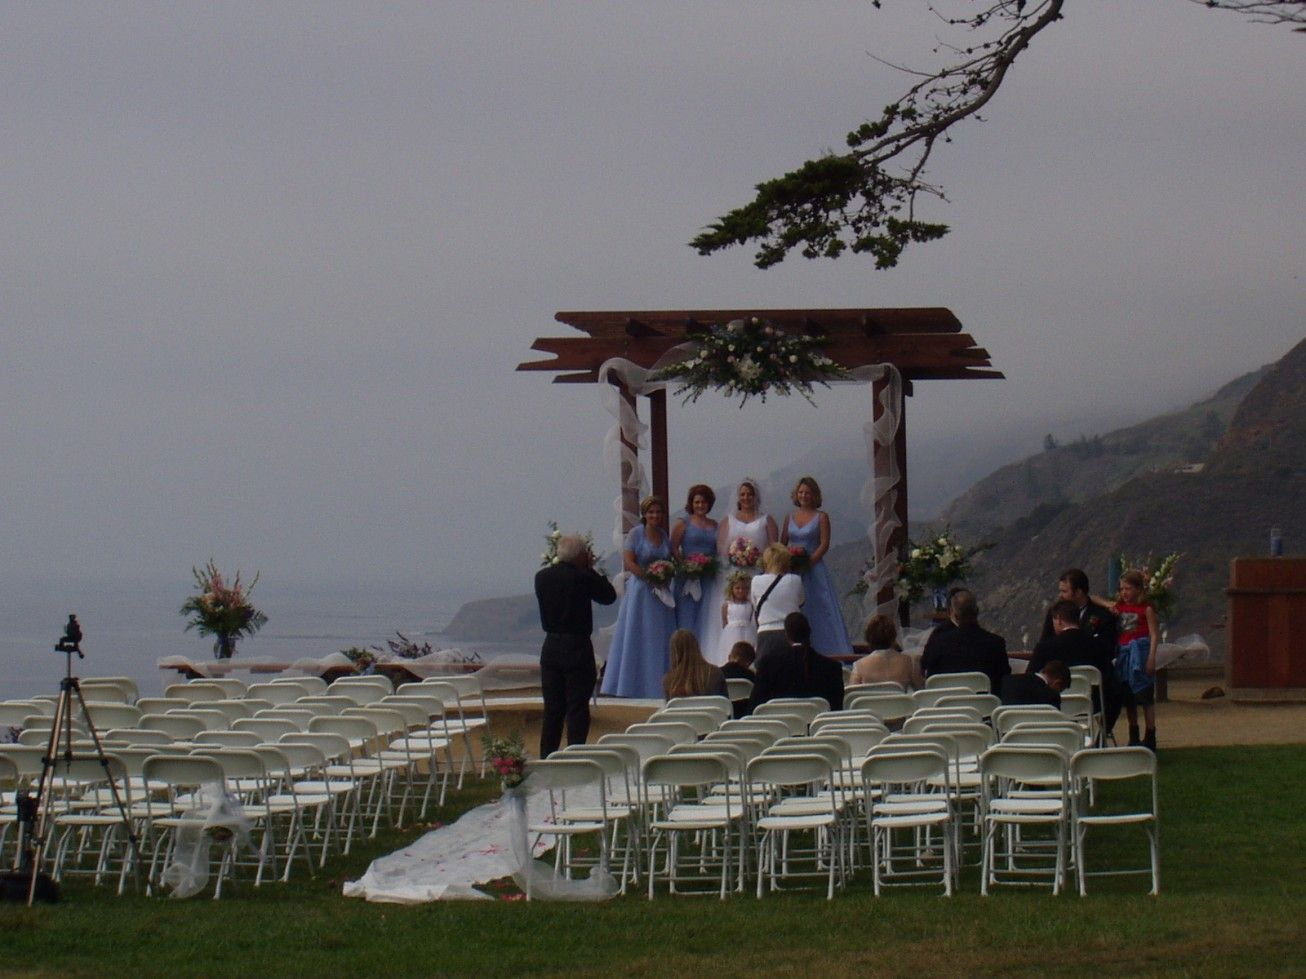 Wedding Arches For Outdoor Weddings   ... Wedding Ceremony Wedding Arch  Flower Chairs For